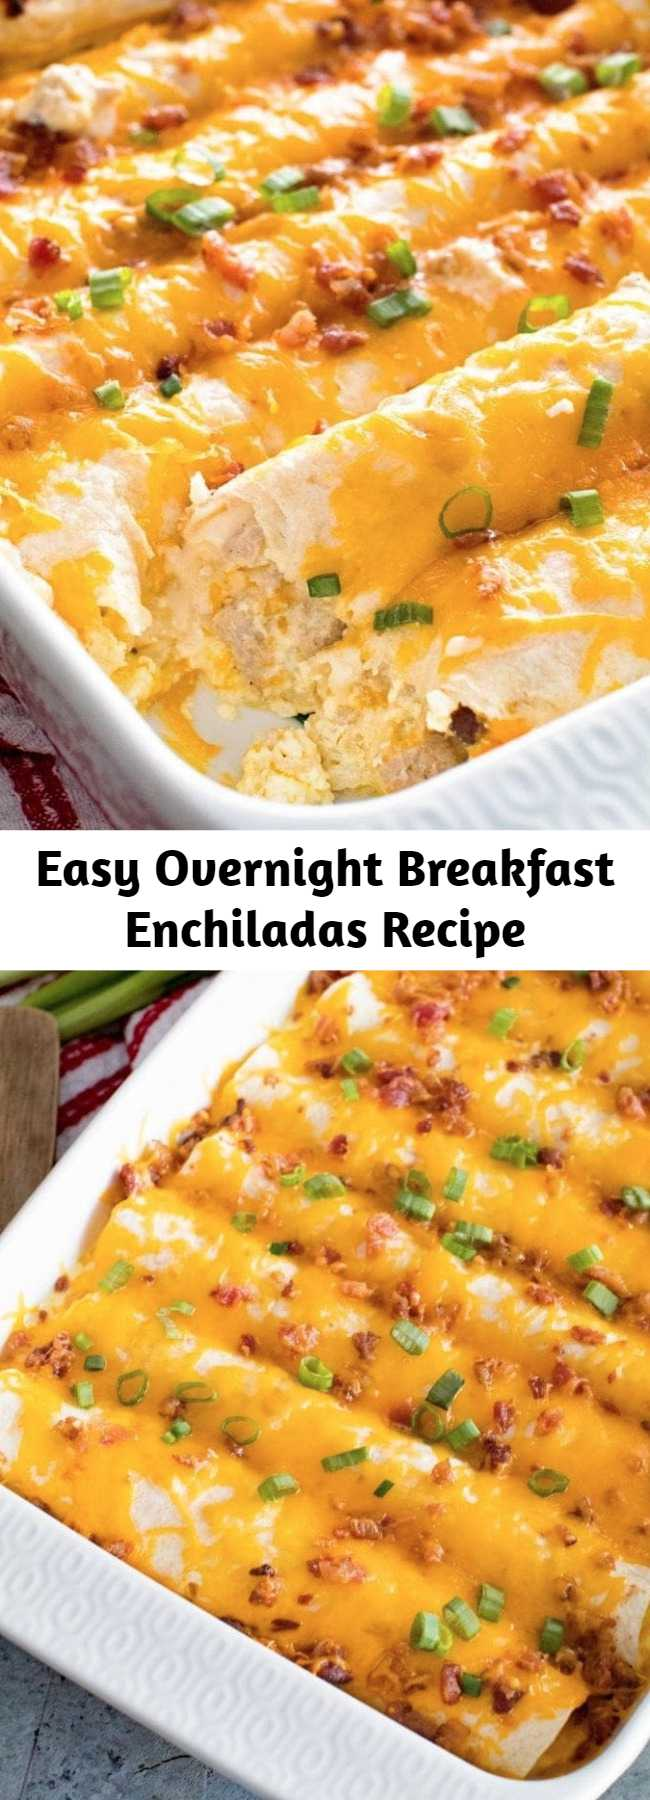 Easy Overnight Breakfast Enchiladas Recipe - Tortillas stuffed with Sausage, Eggs,Cheese and Bacon! This is the Perfect Overnight Breakfast Casserole Recipe!